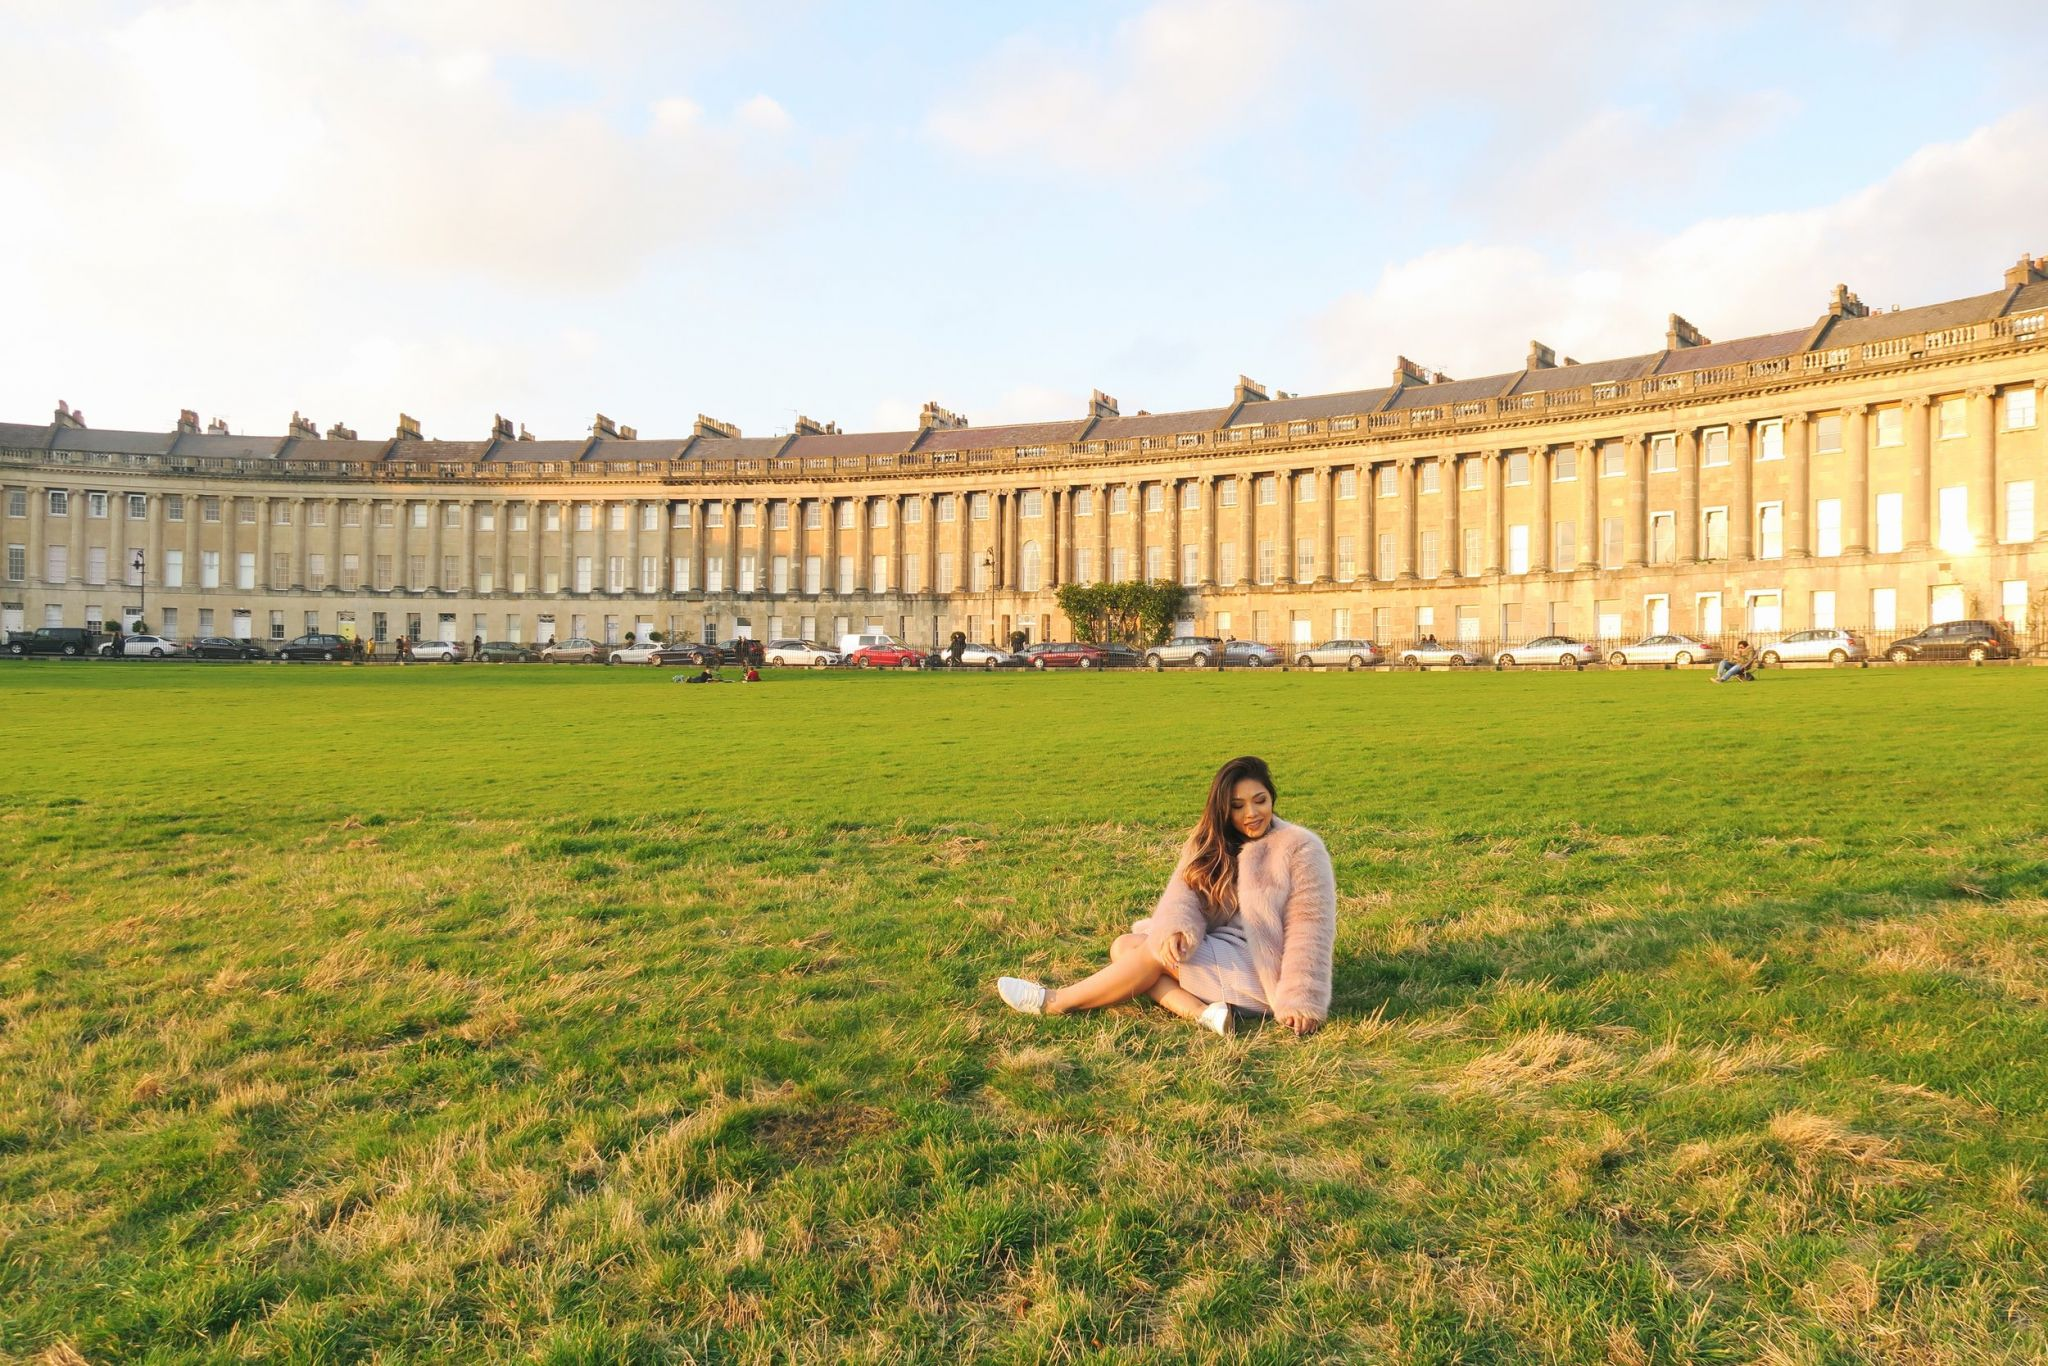 Basking in the sun at Victoria Park, while enjoying my beautiful background, the Royal Crescent .